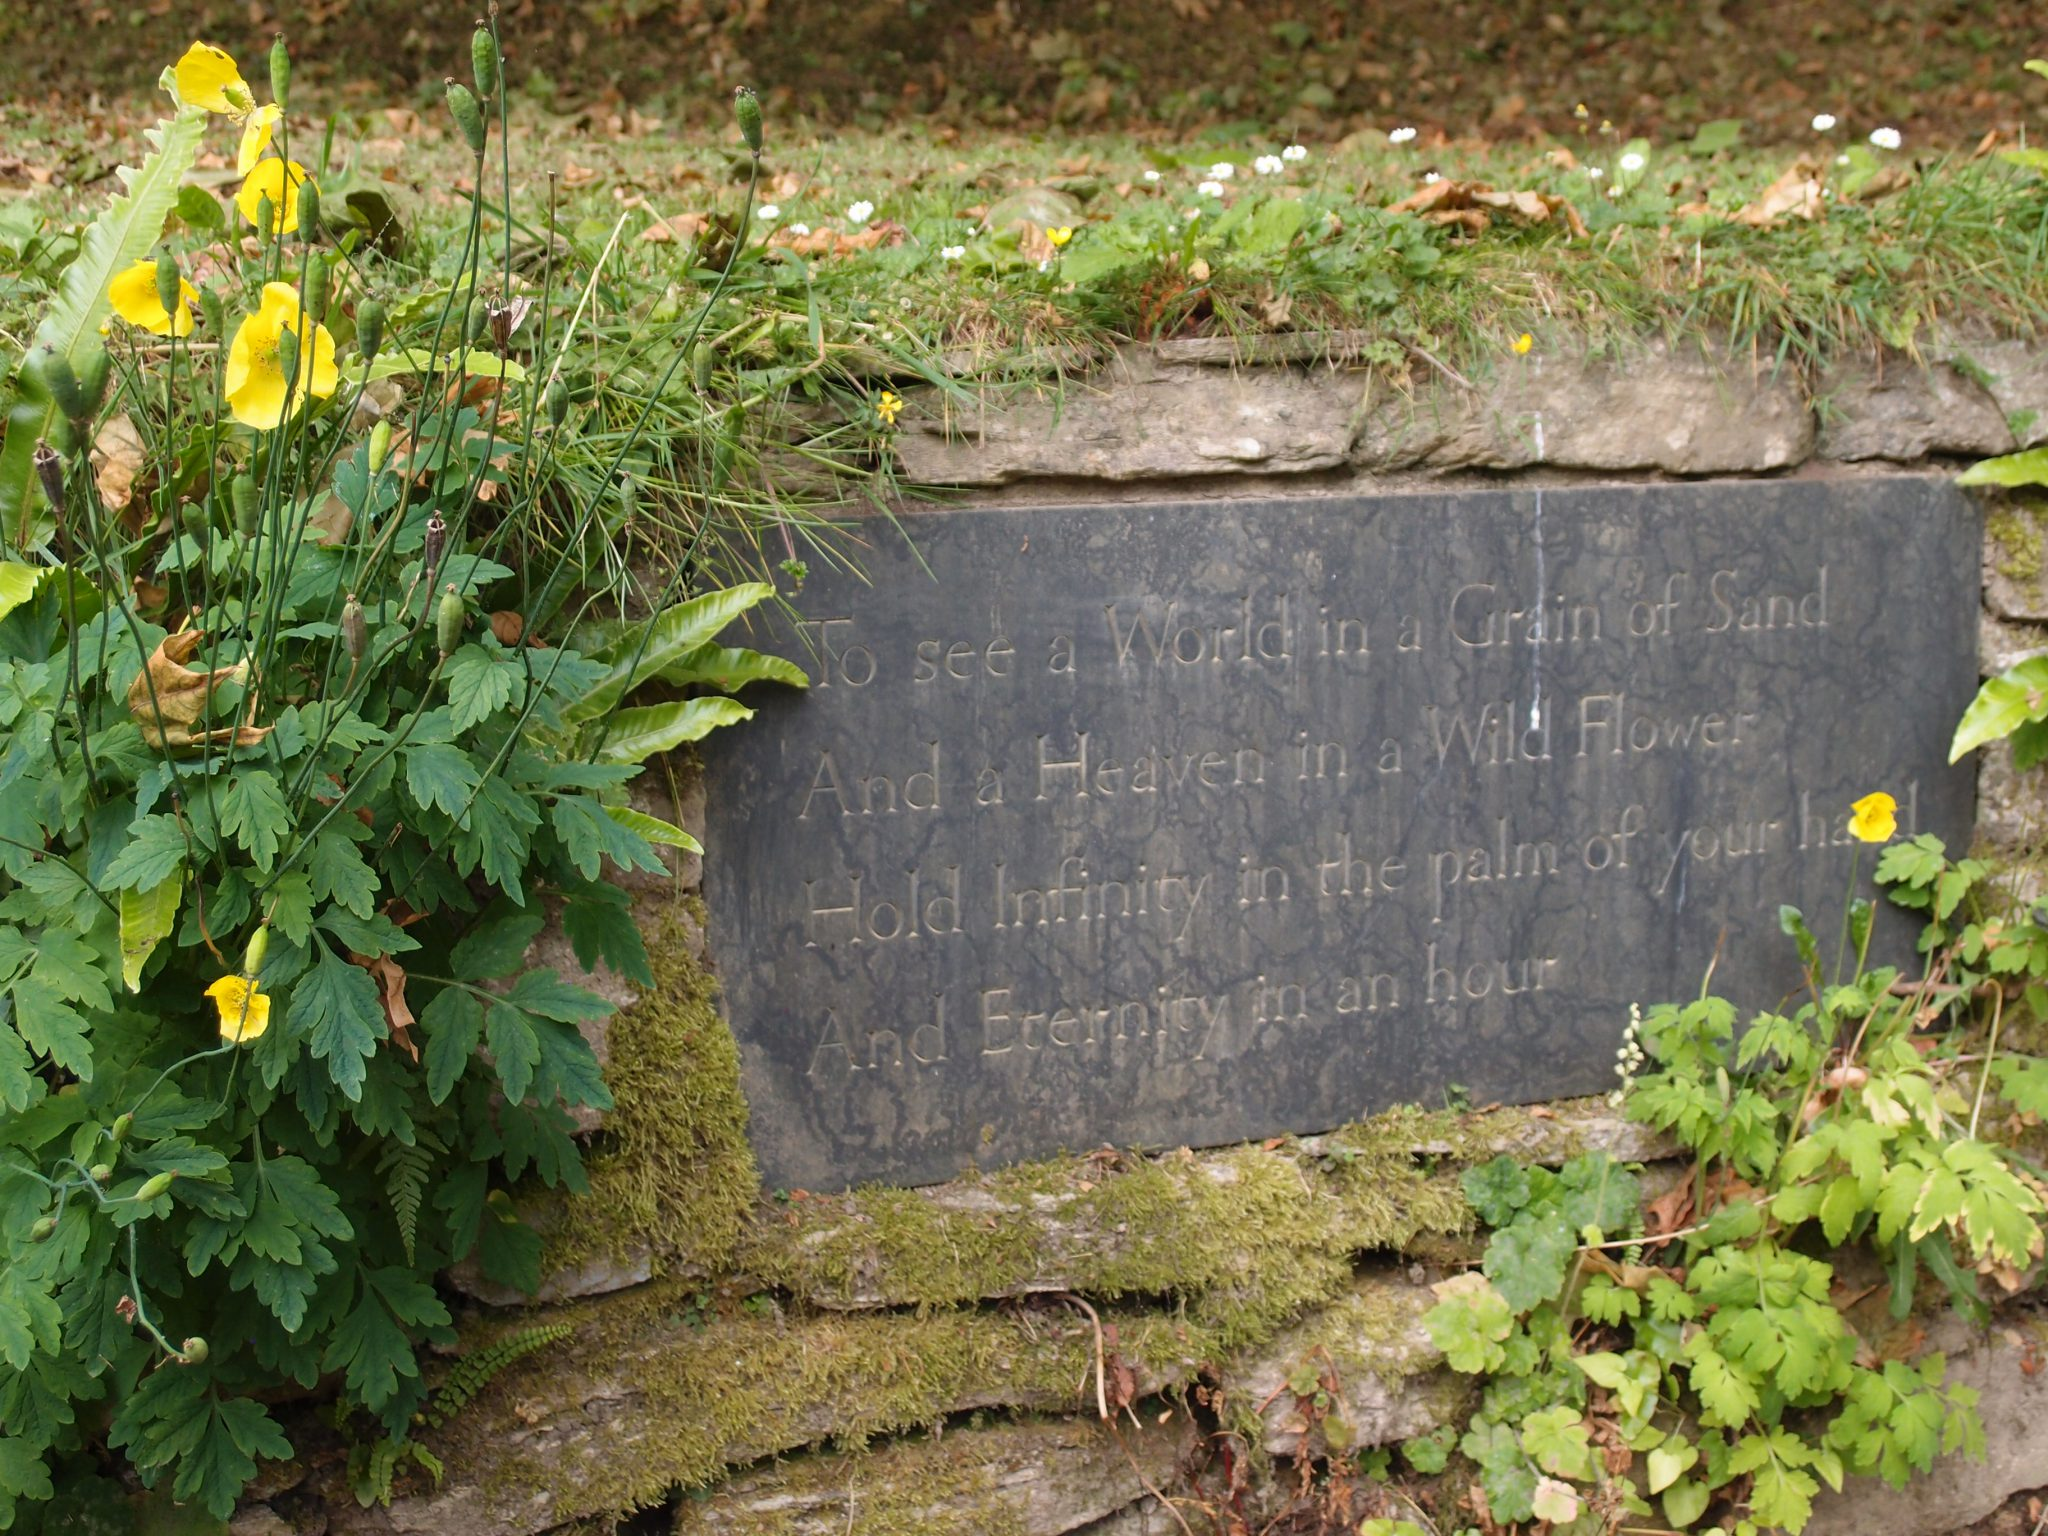 Garden Plaque. Words by William Blake (born 1757, died 1827)